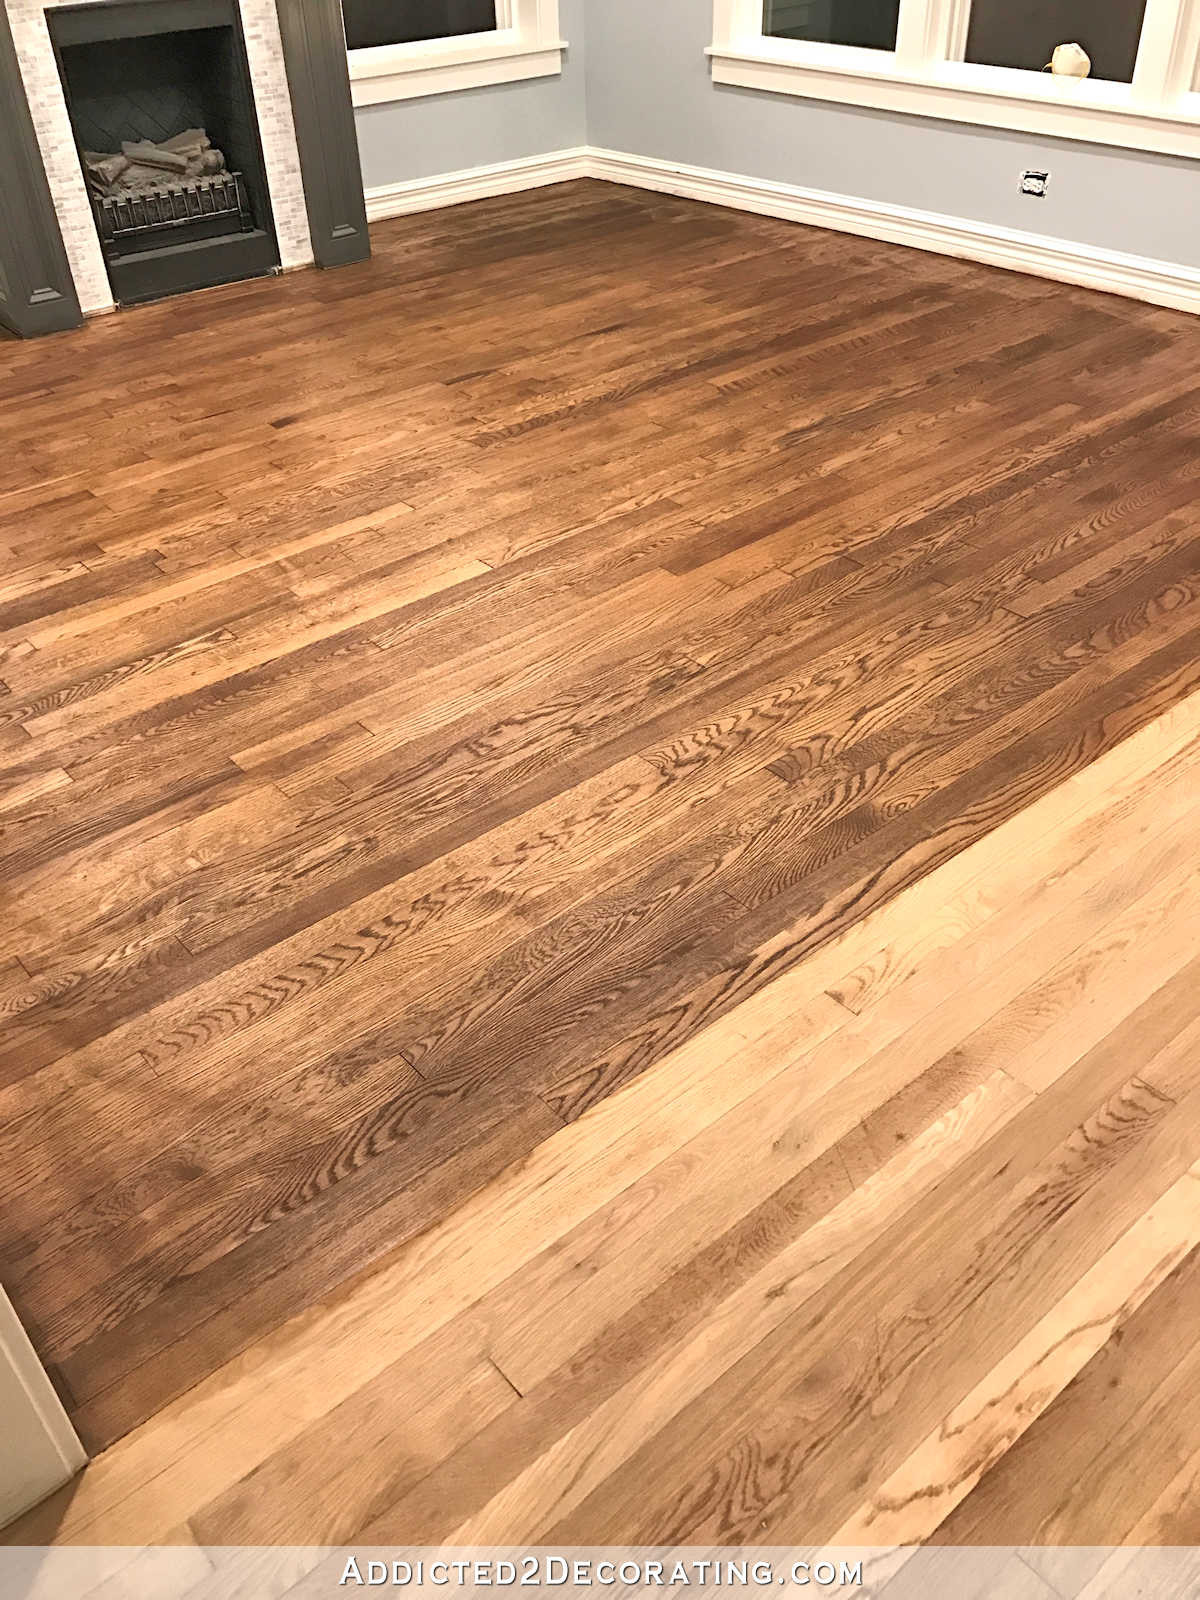 7 plank hardwood flooring of adventures in staining my red oak hardwood floors products process intended for staining red oak hardwood floors 7 stain on the living room floor